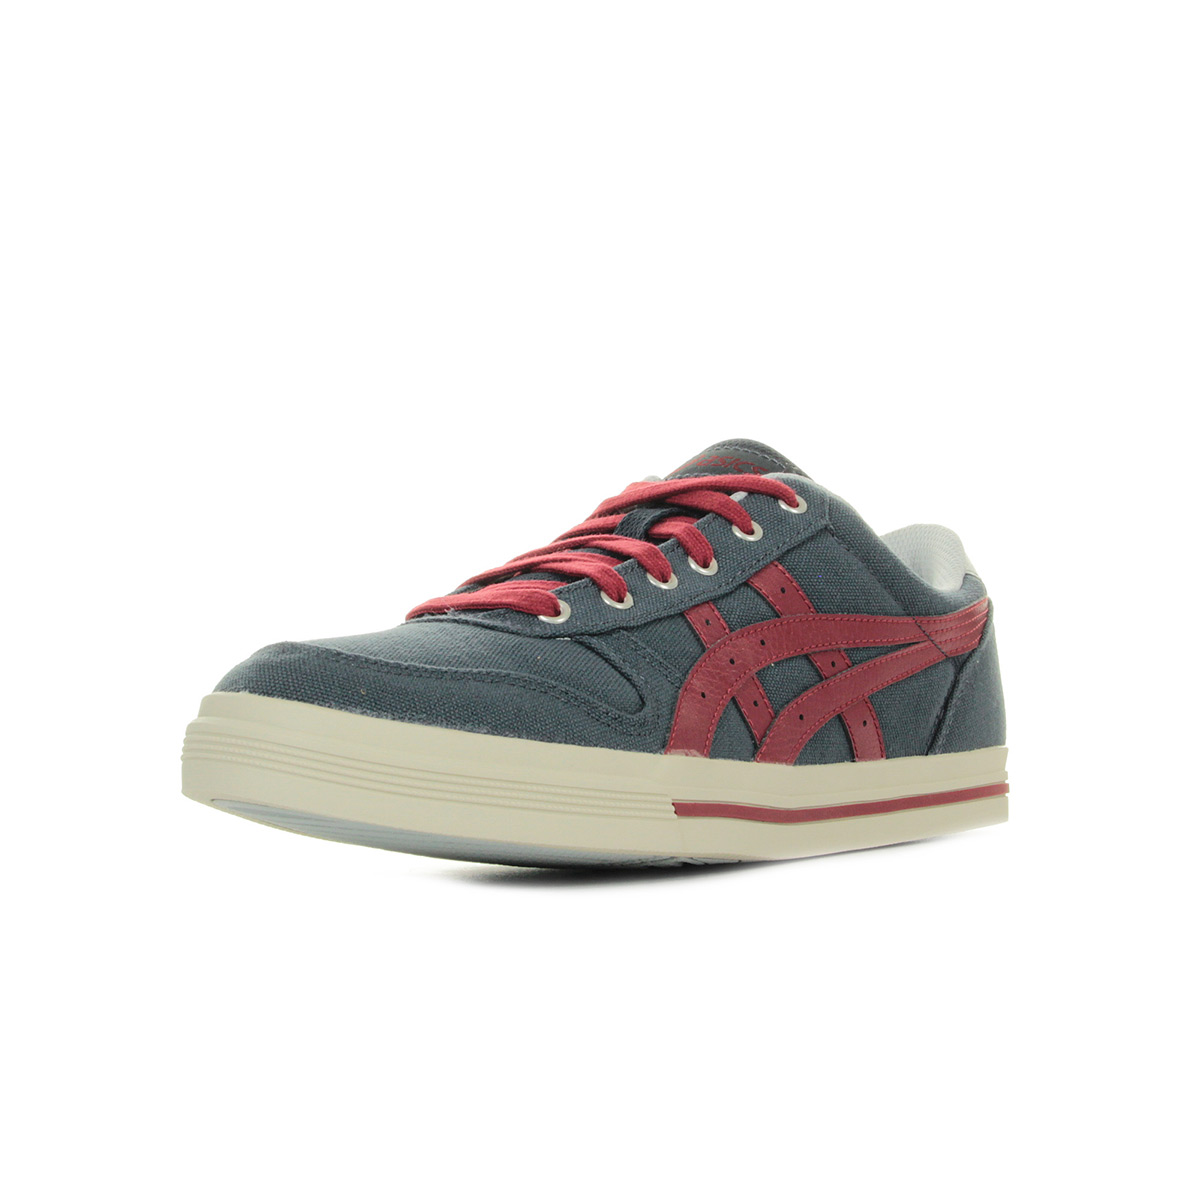 Chaussures Baskets Asics homme Aaron Indian Ink taille Bleu marine Bleue Textile